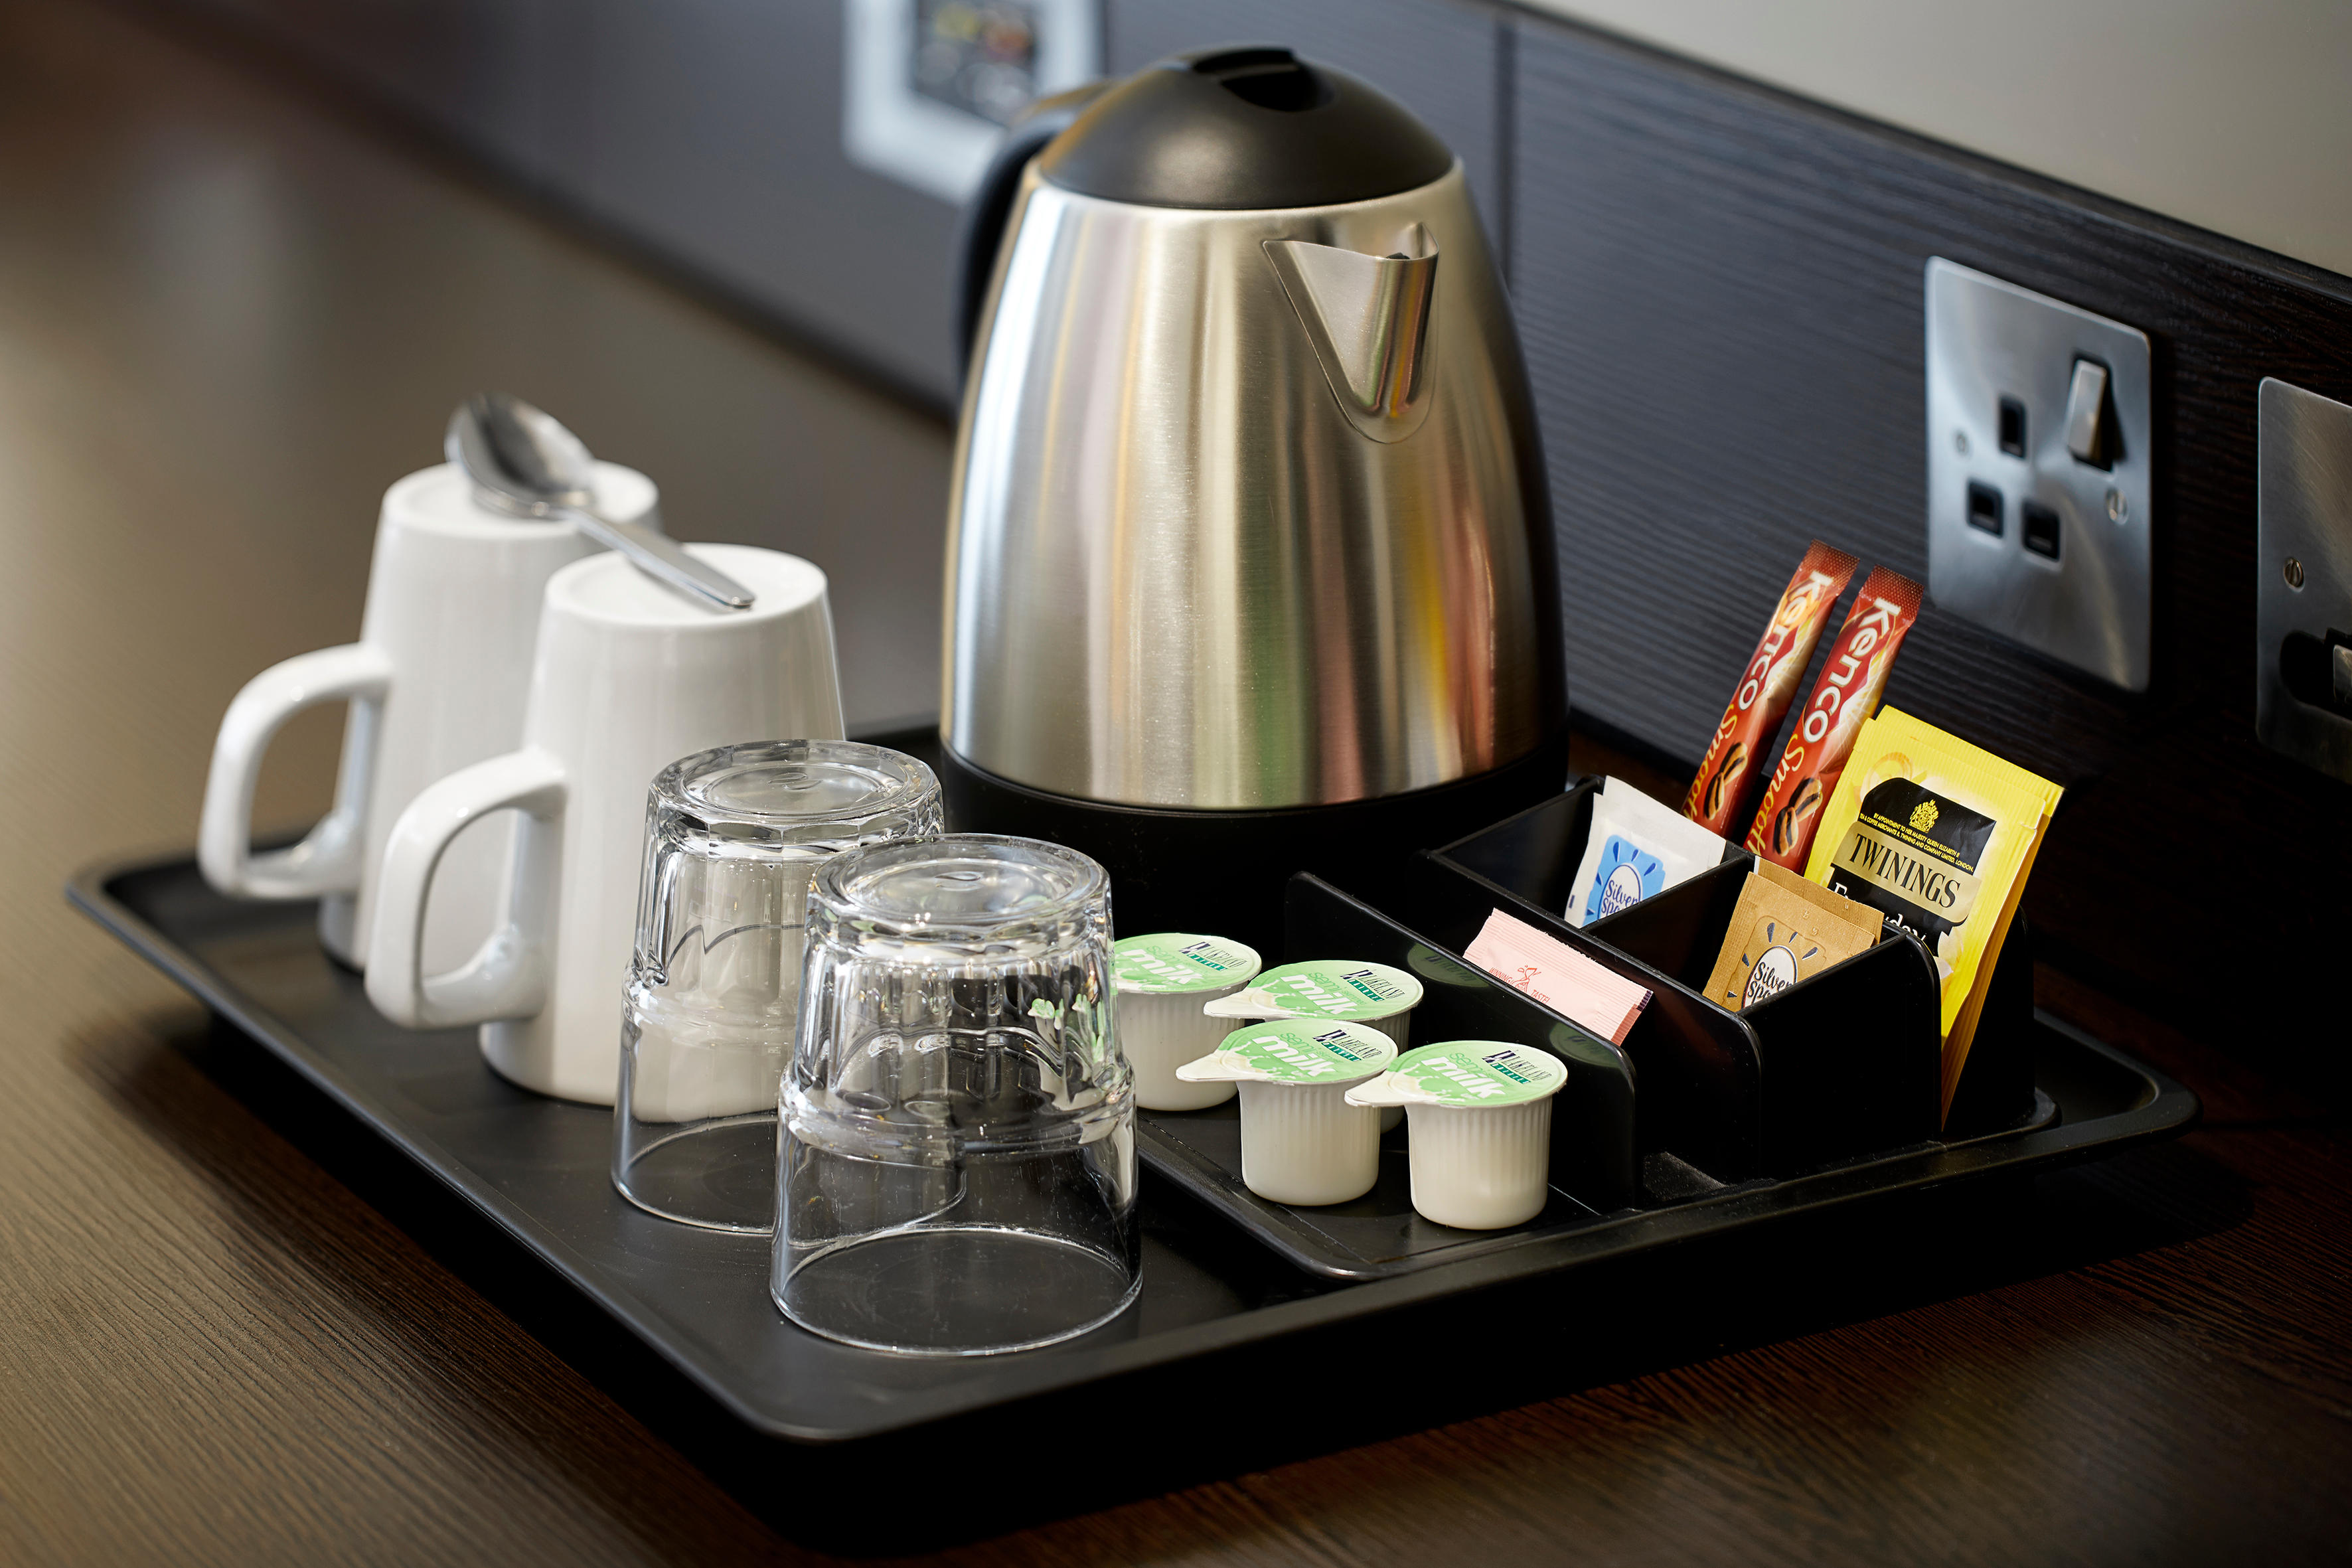 Premier Inn bedroom with tea/coffee-making facilities Premier Inn Lowestoft hotel Lowestoft 03333 211281